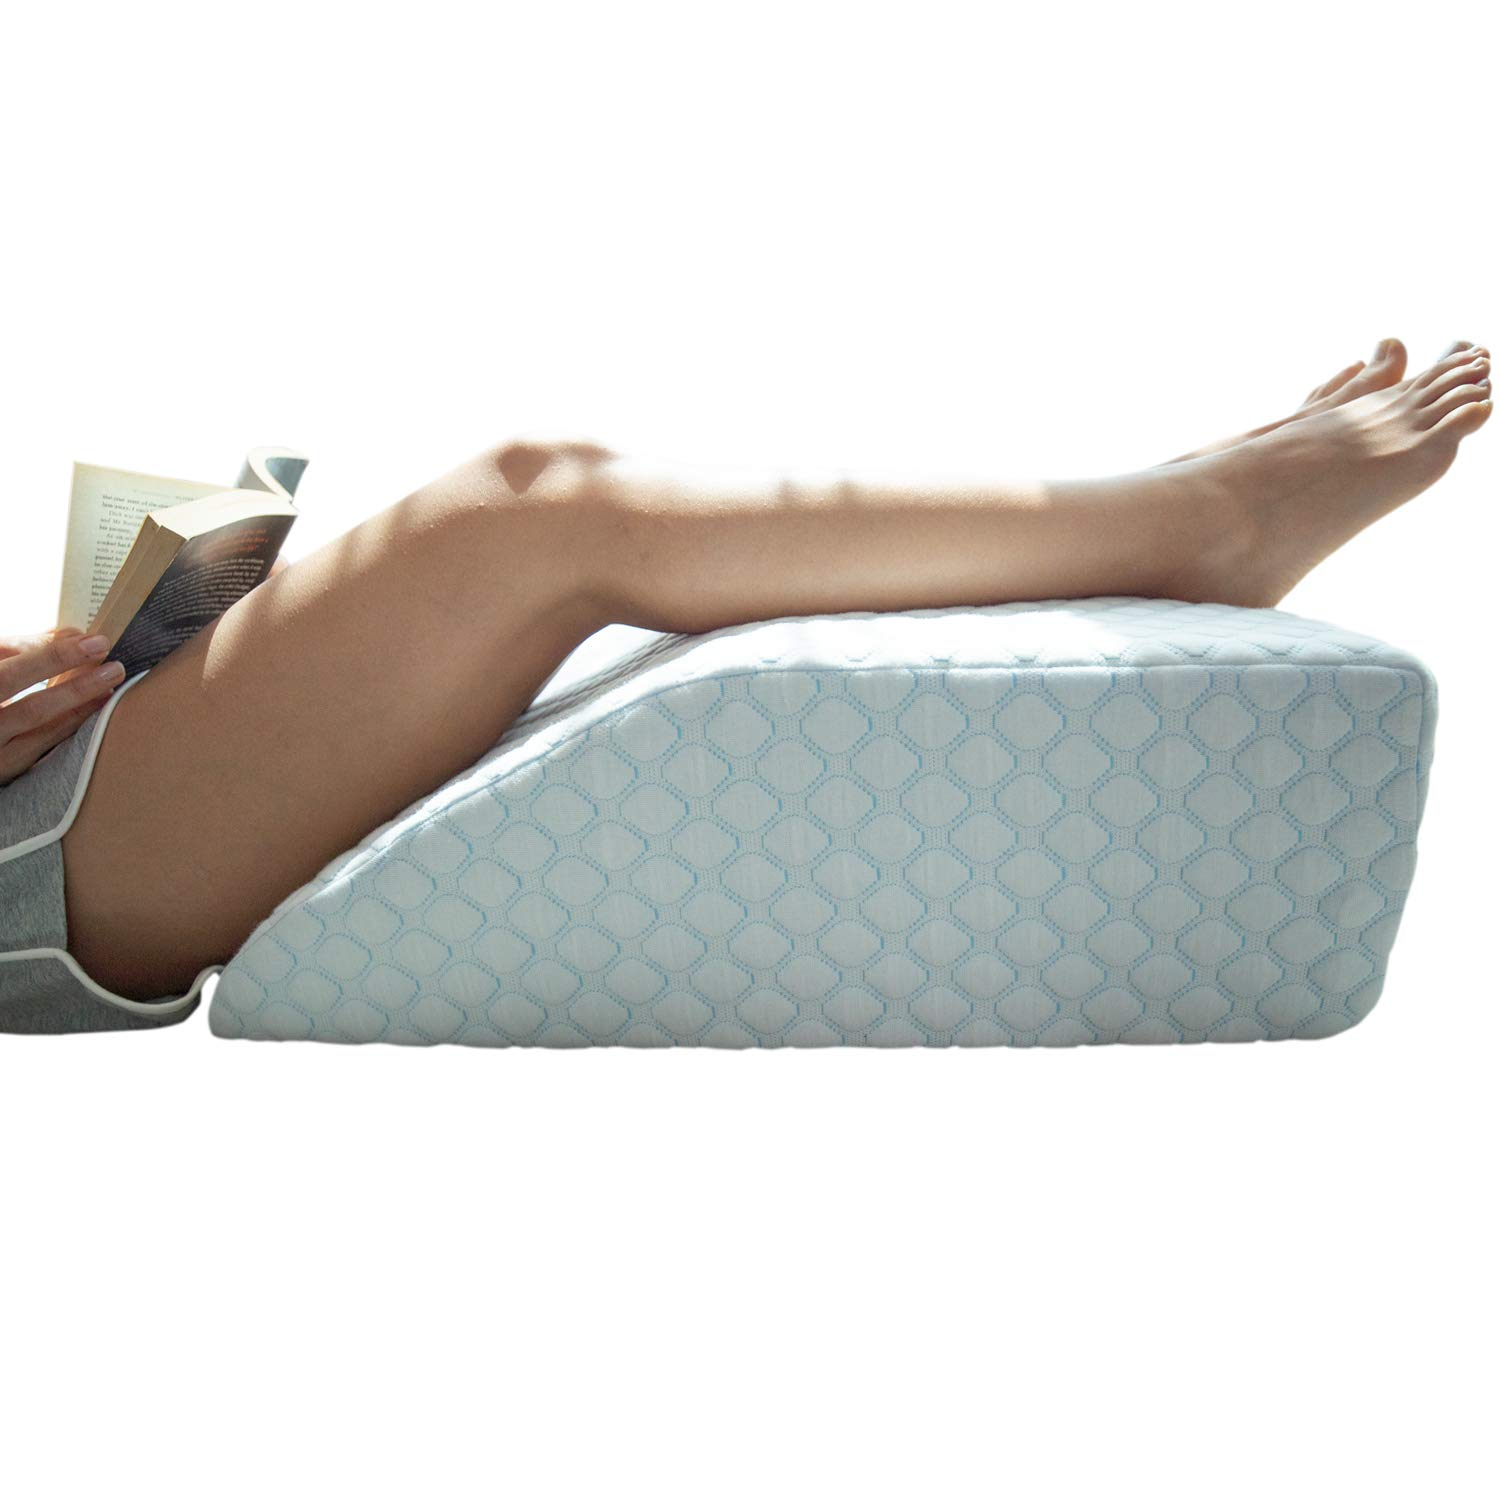 Elevating Leg Rest Pillow with 1.5 Inch Memory Foam Top, (23.6 x 16.5 x 8 Inches), Removable and Washable Cover, Perfect for Back, Hip and Knee Pain Relief, LENORA 8 Inch Leg Elevator by Lenora